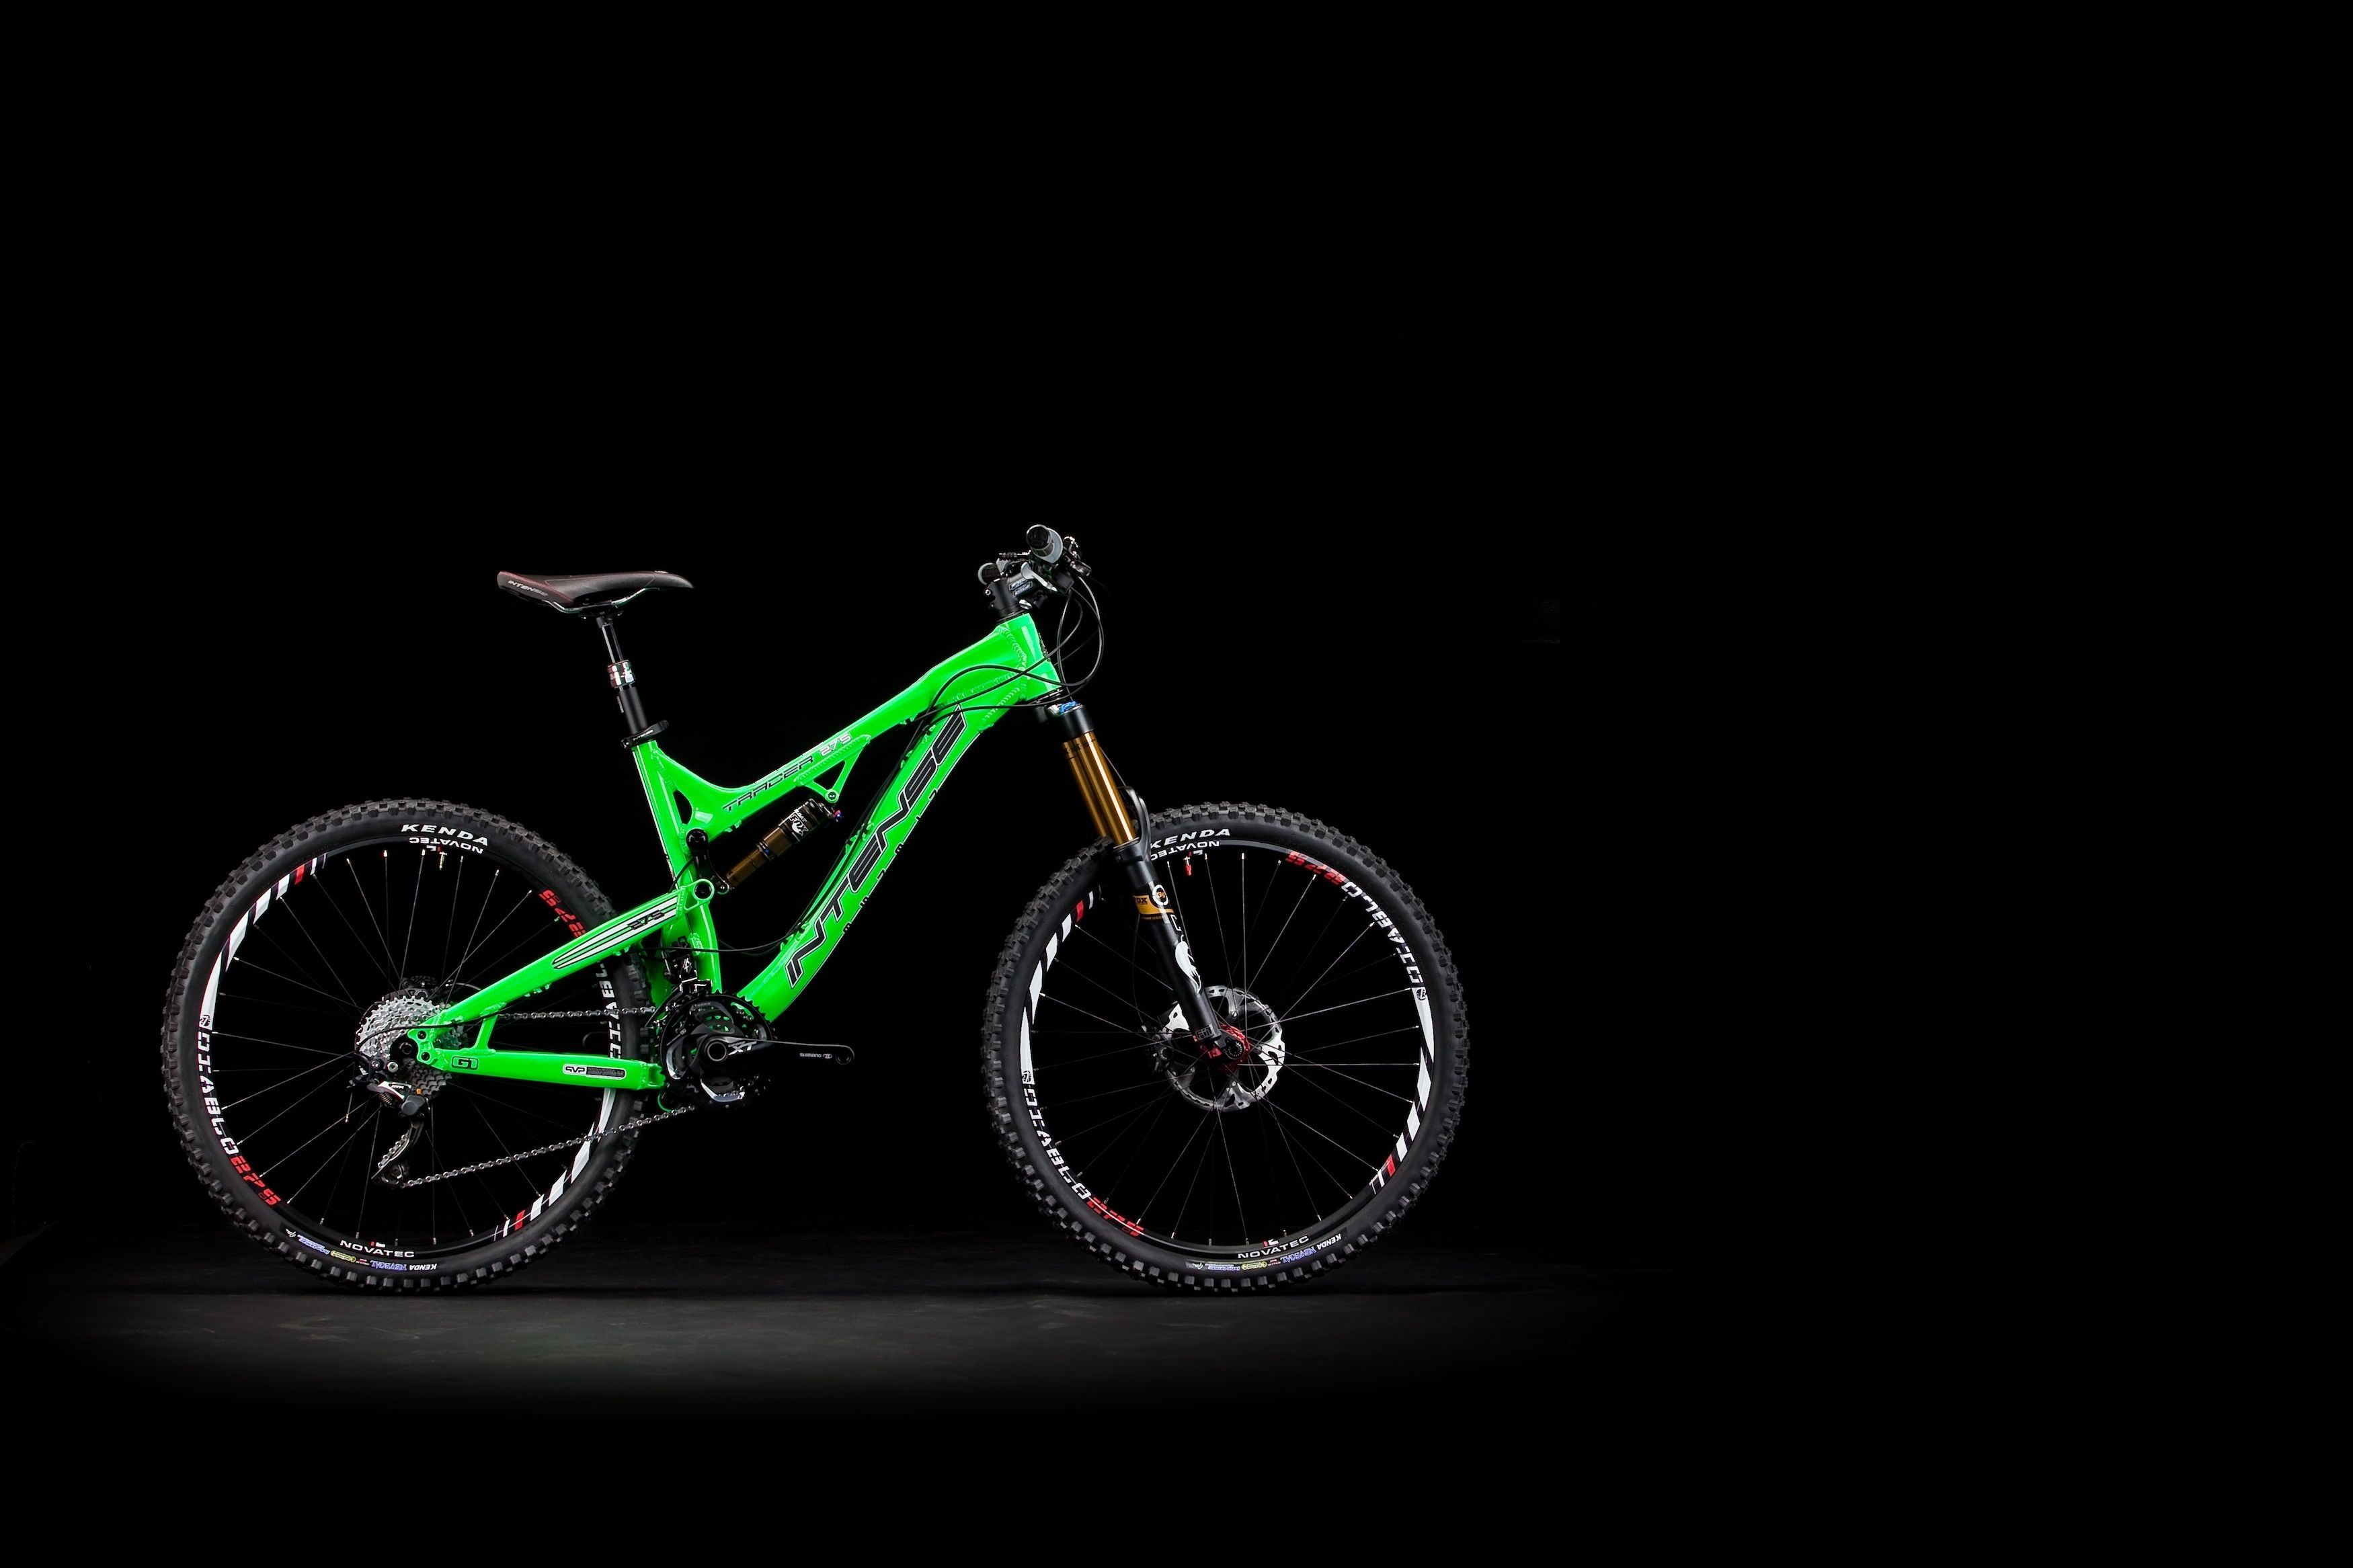 27 5 Tracer 275 Intense Cycles Cool Bikes Bicycle Bike